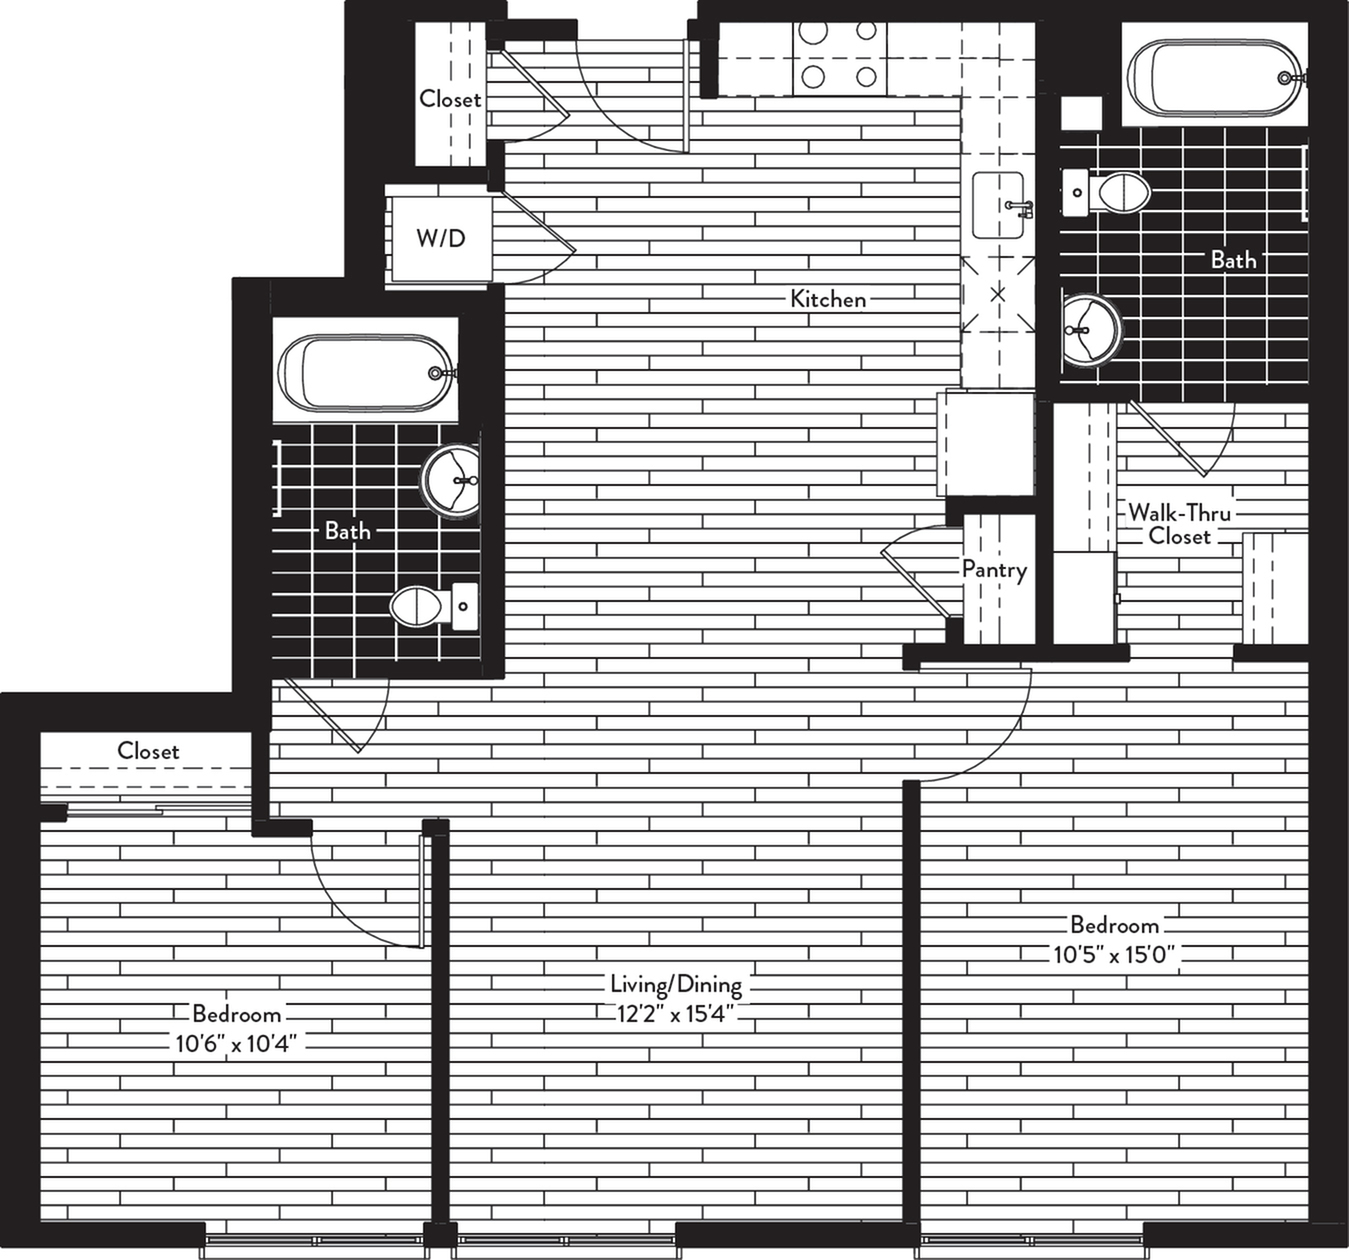 1005 square foot two bedroom two bath floor plan image